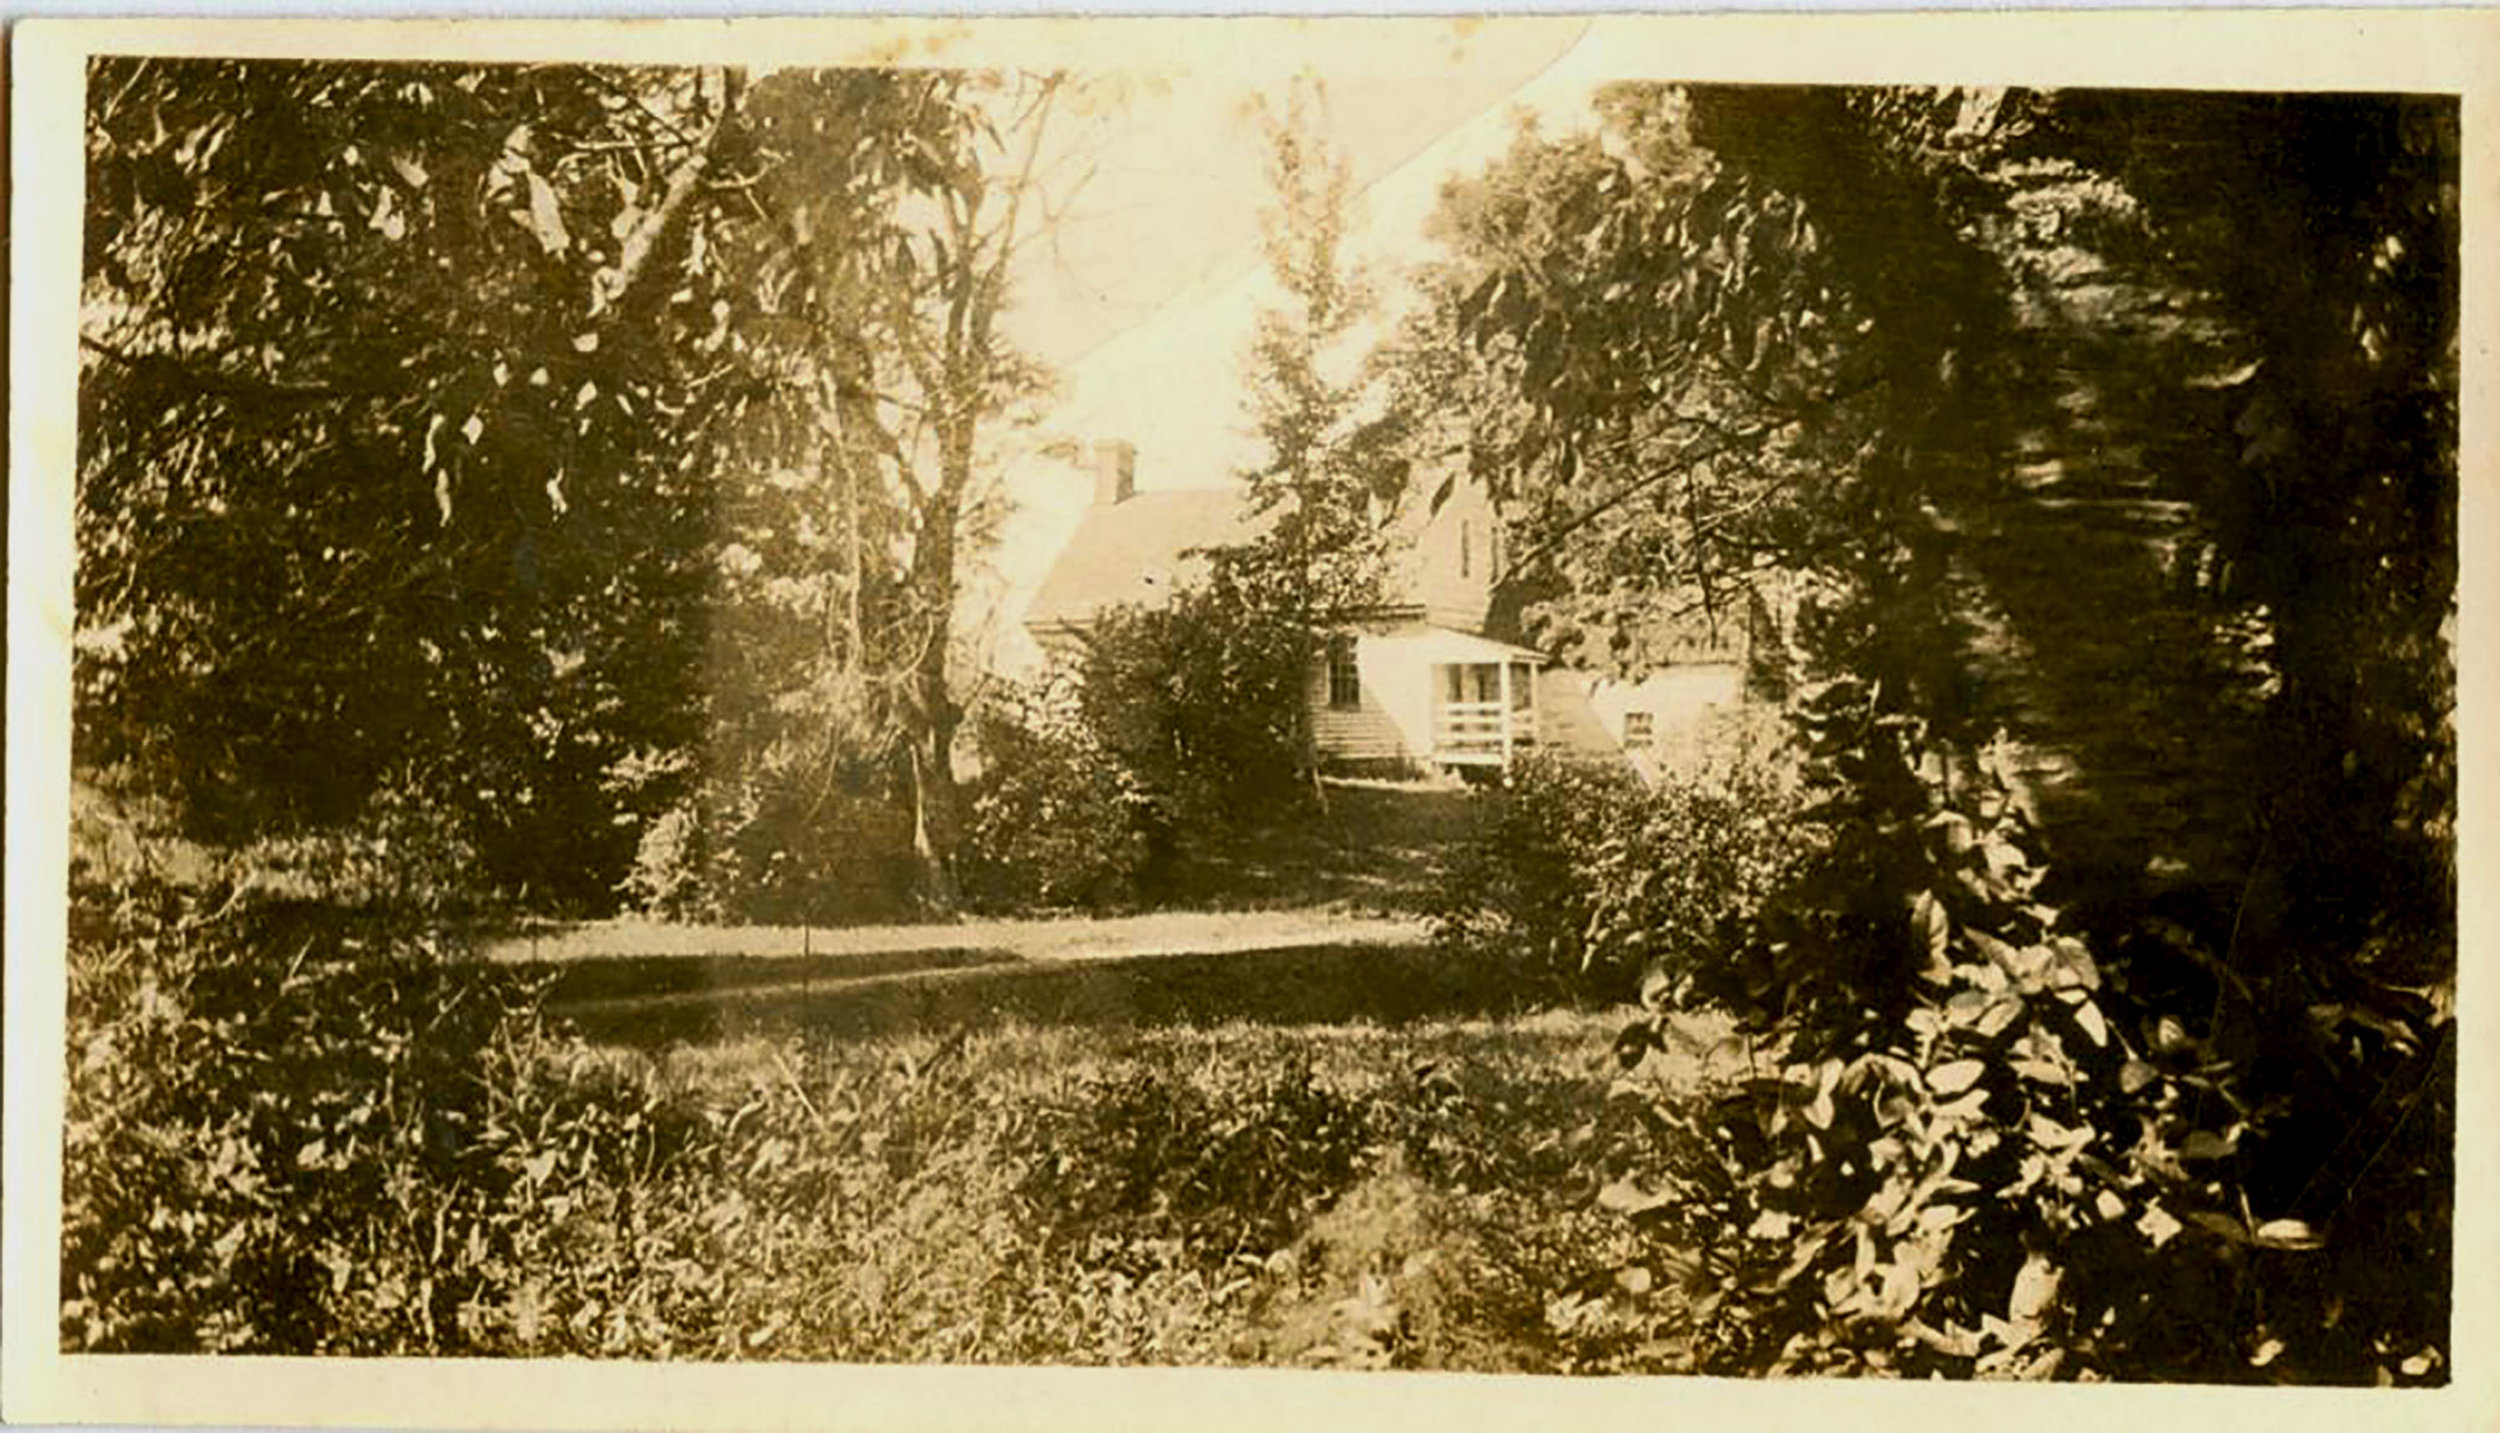 Riley-Bolten House; photo – ca. 1926 view from Old Georgetown Road, Courtesy: Francis Hansbrough, Maryland National Capital Park and Planning Commission